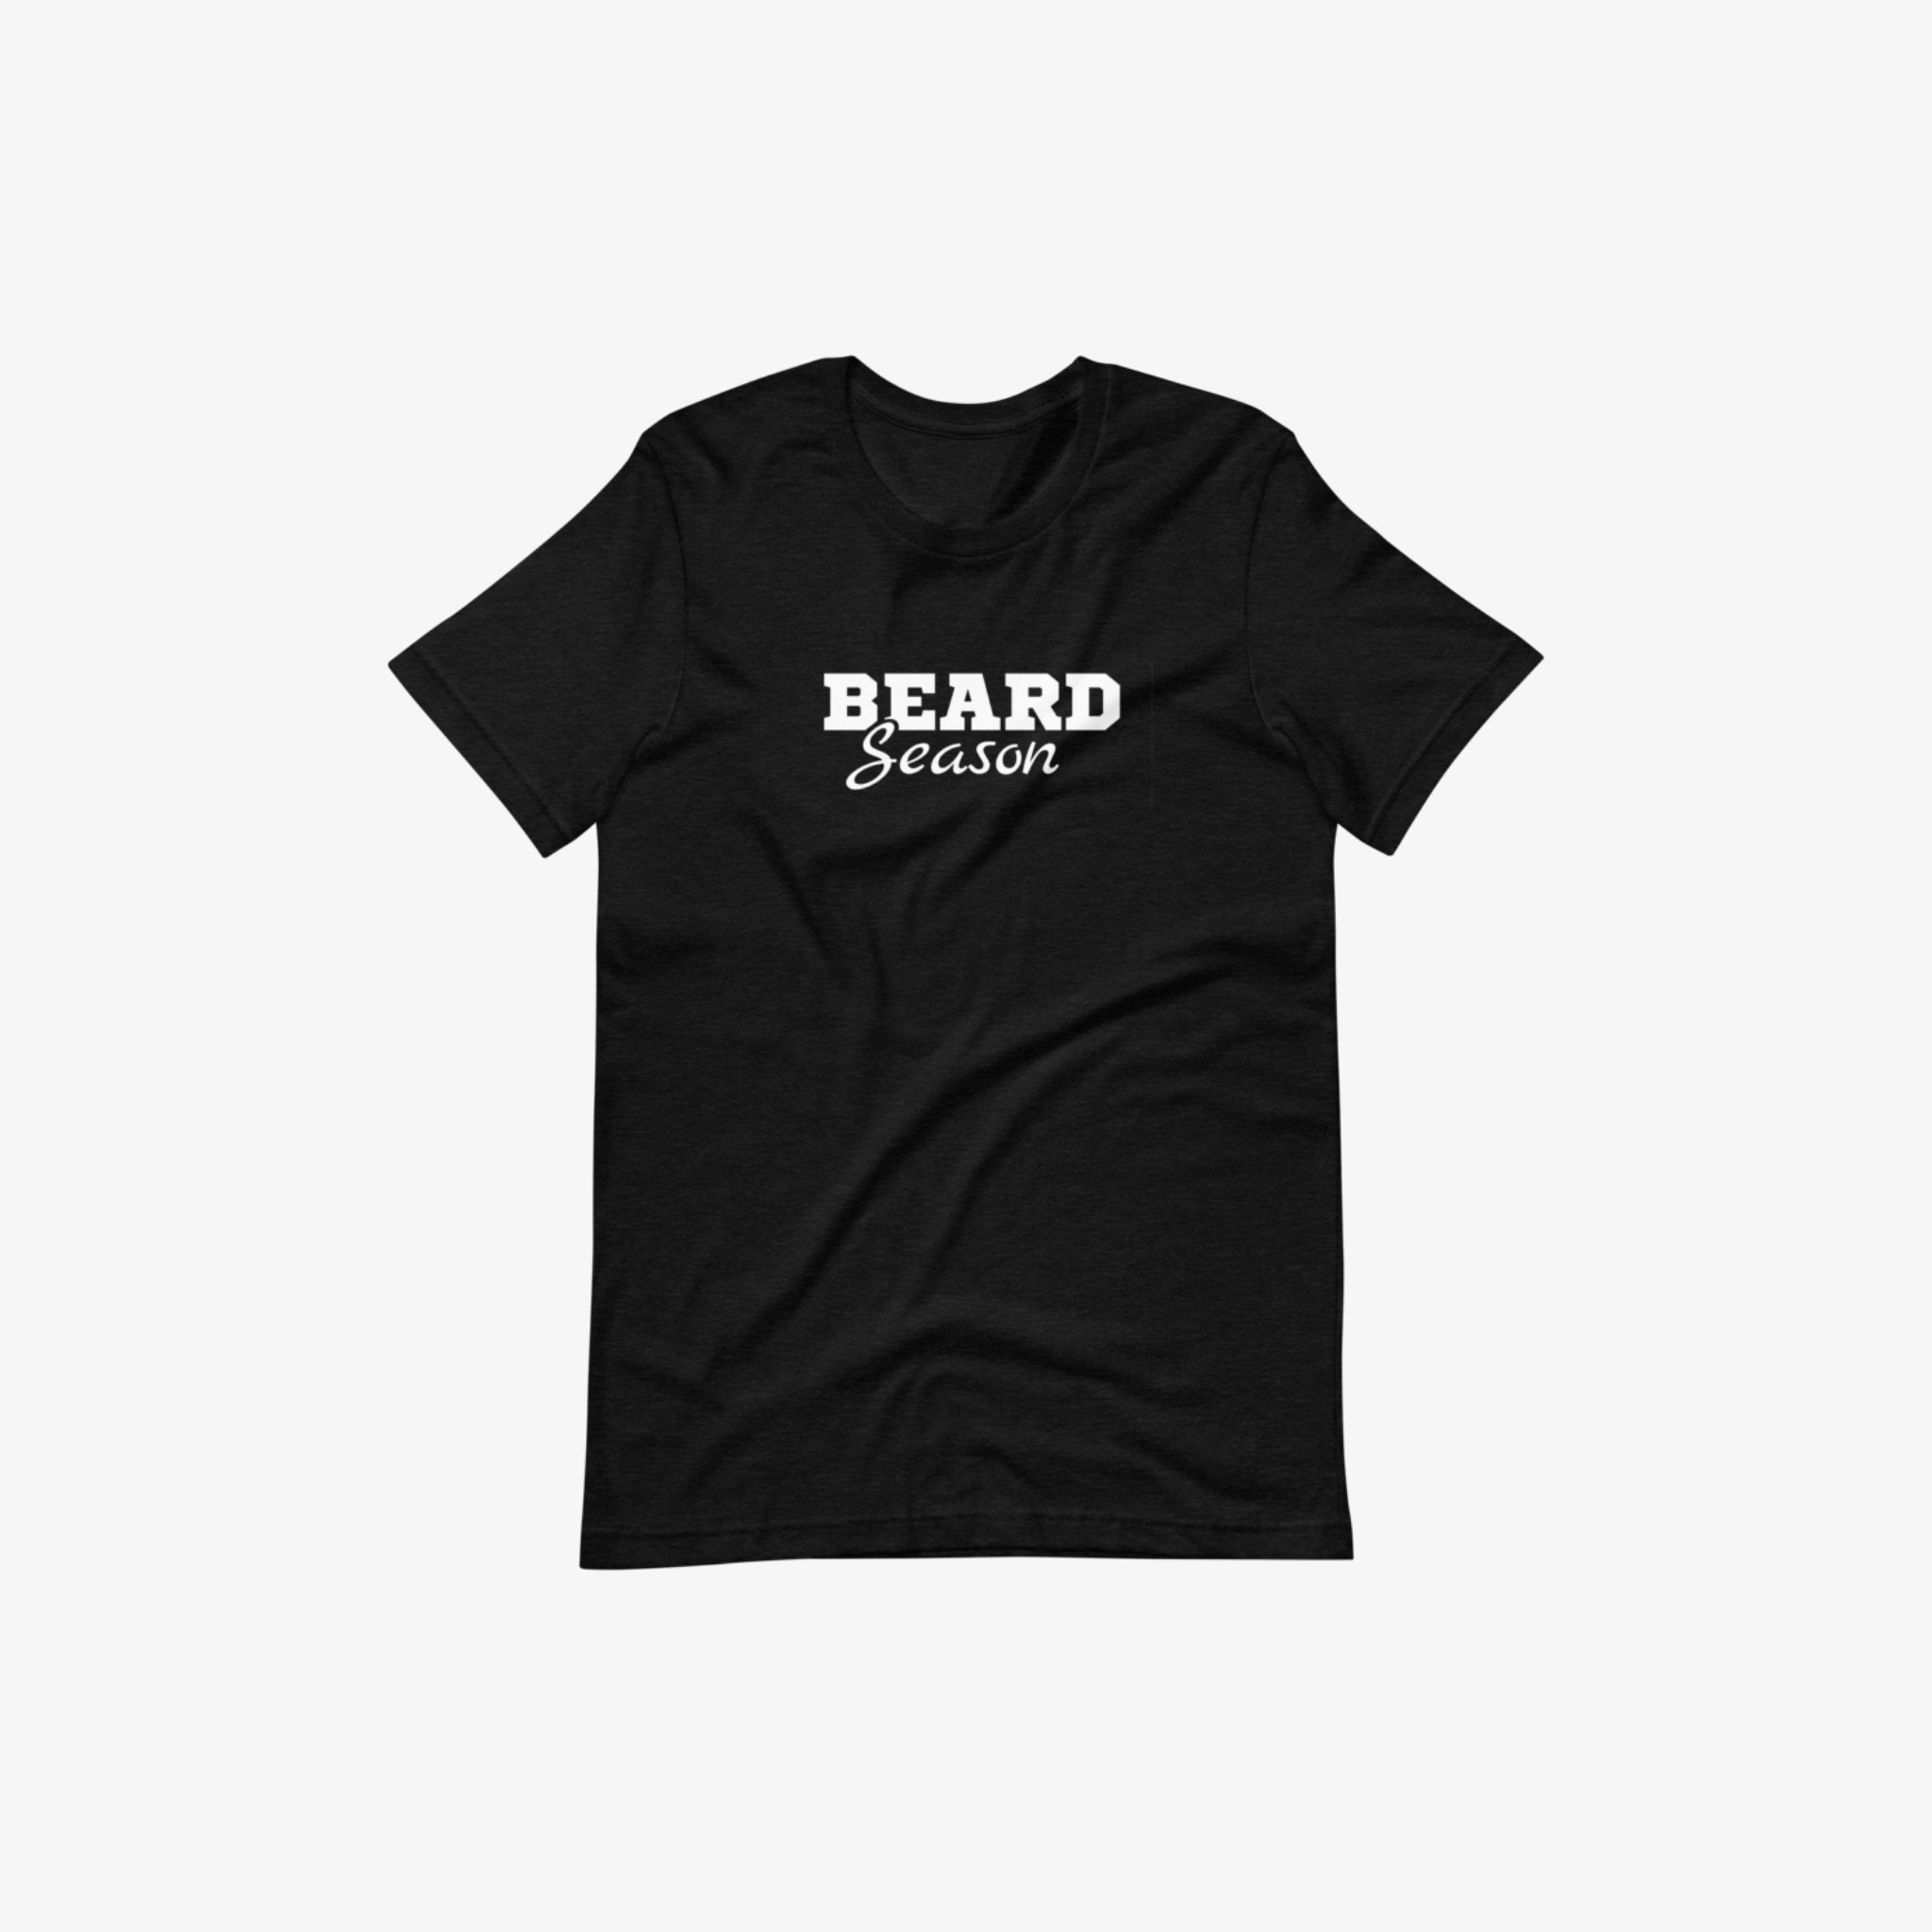 Honor's black beard season short sleeve t-shirt with a white background